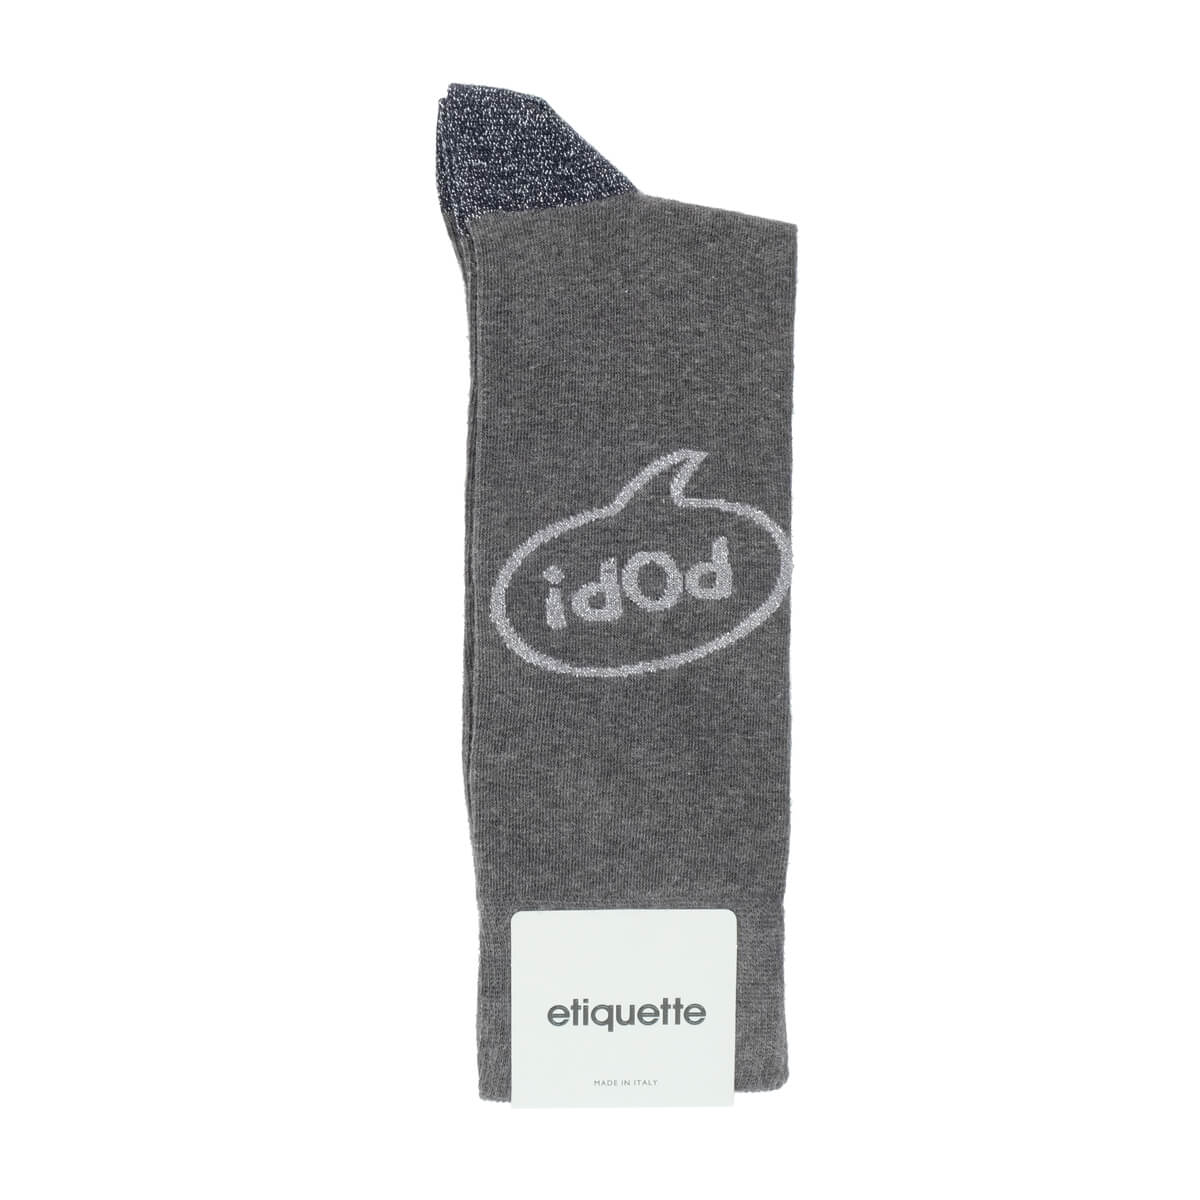 Mens Socks - Popist Men's Socks - Dark Grey⎪Etiquette Clothiers